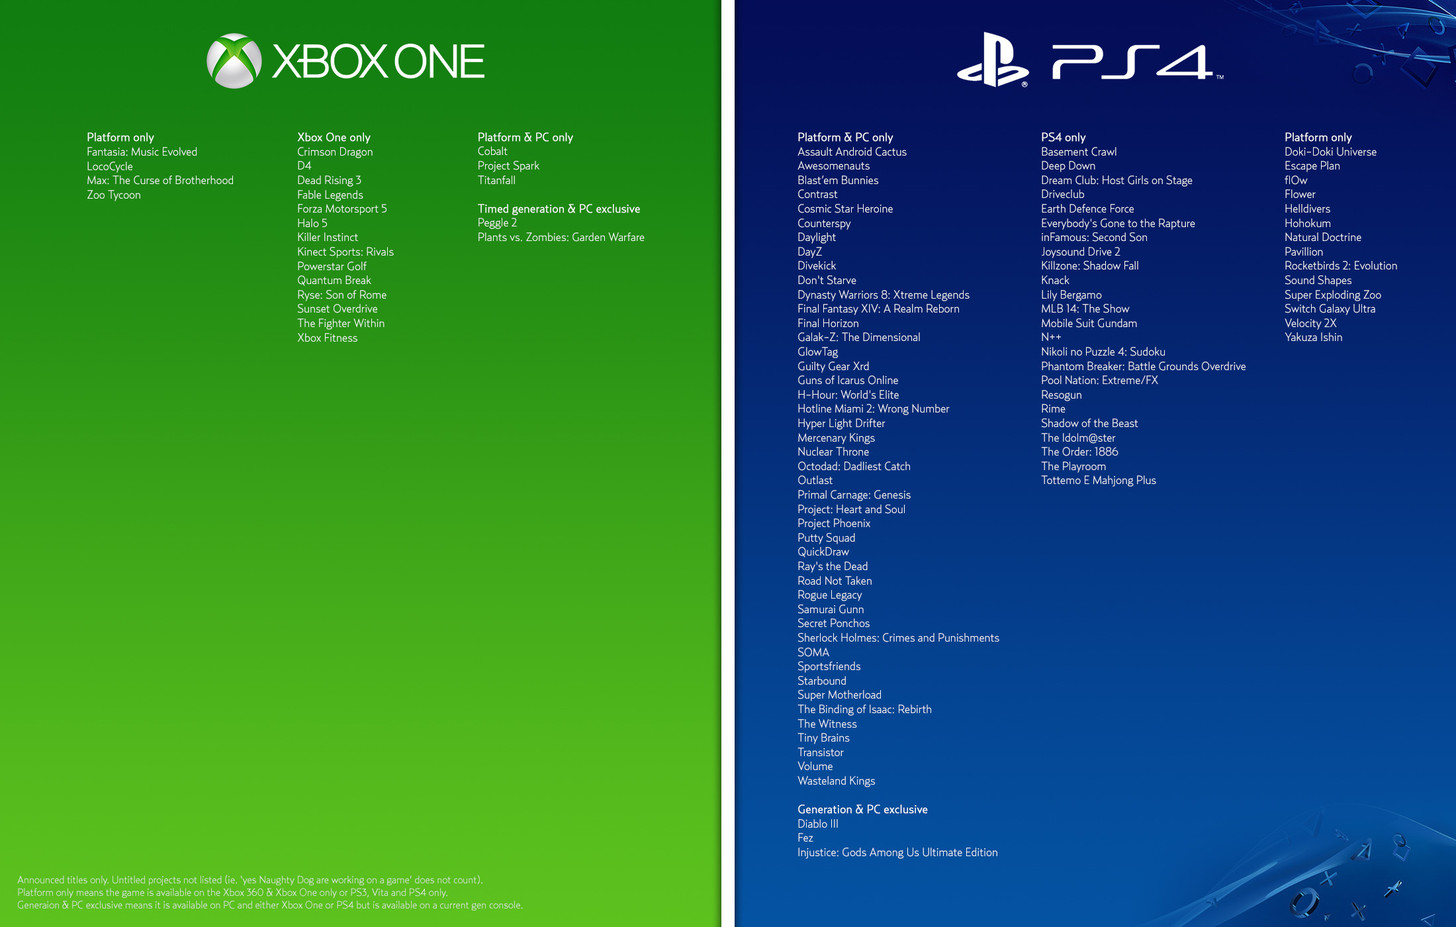 Xbox One and Playstation 4 exclusive games